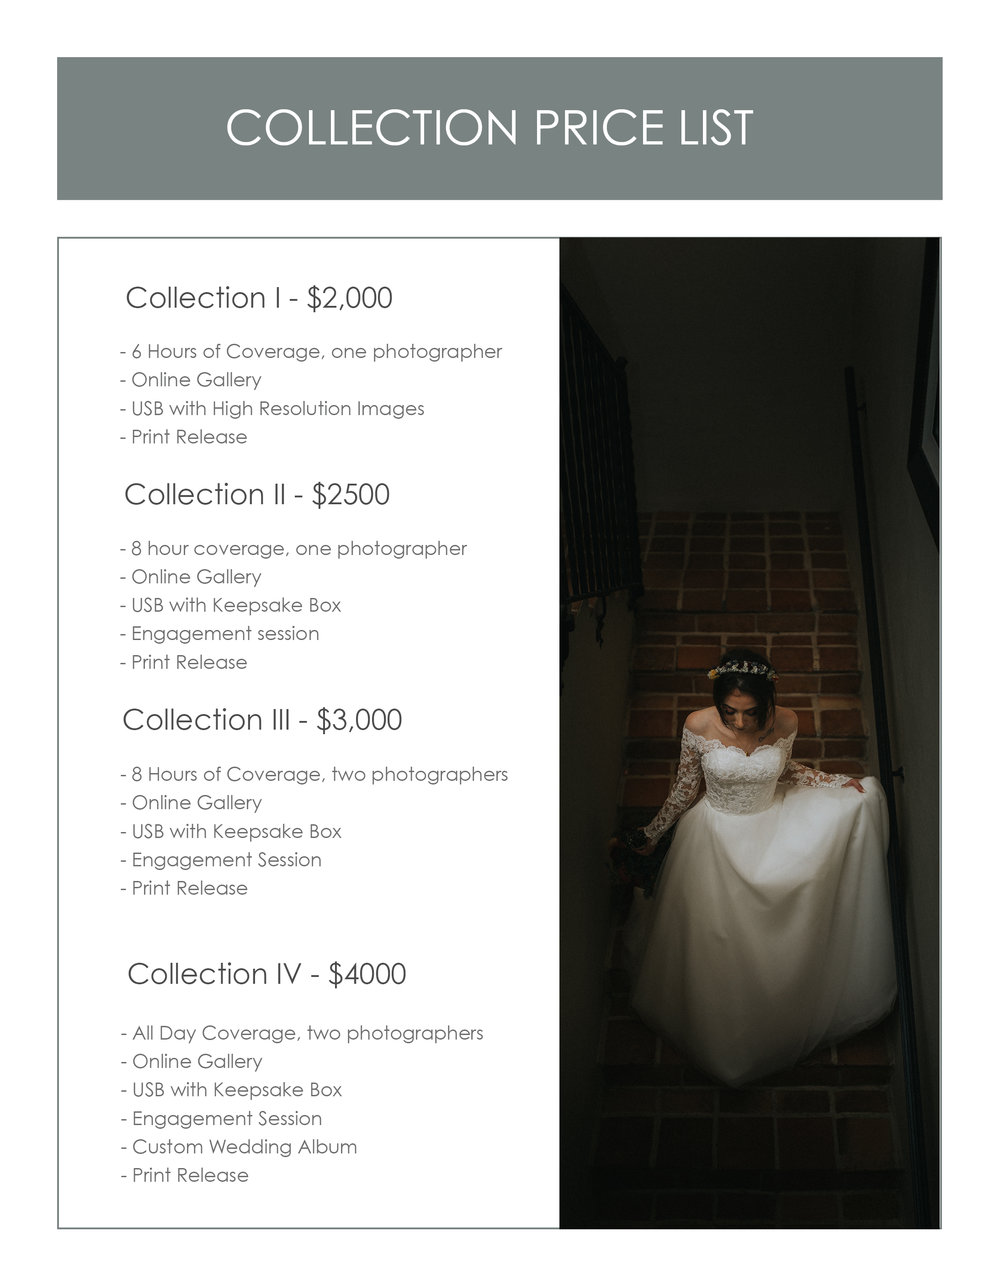 1-PriceList-Collections.jpg